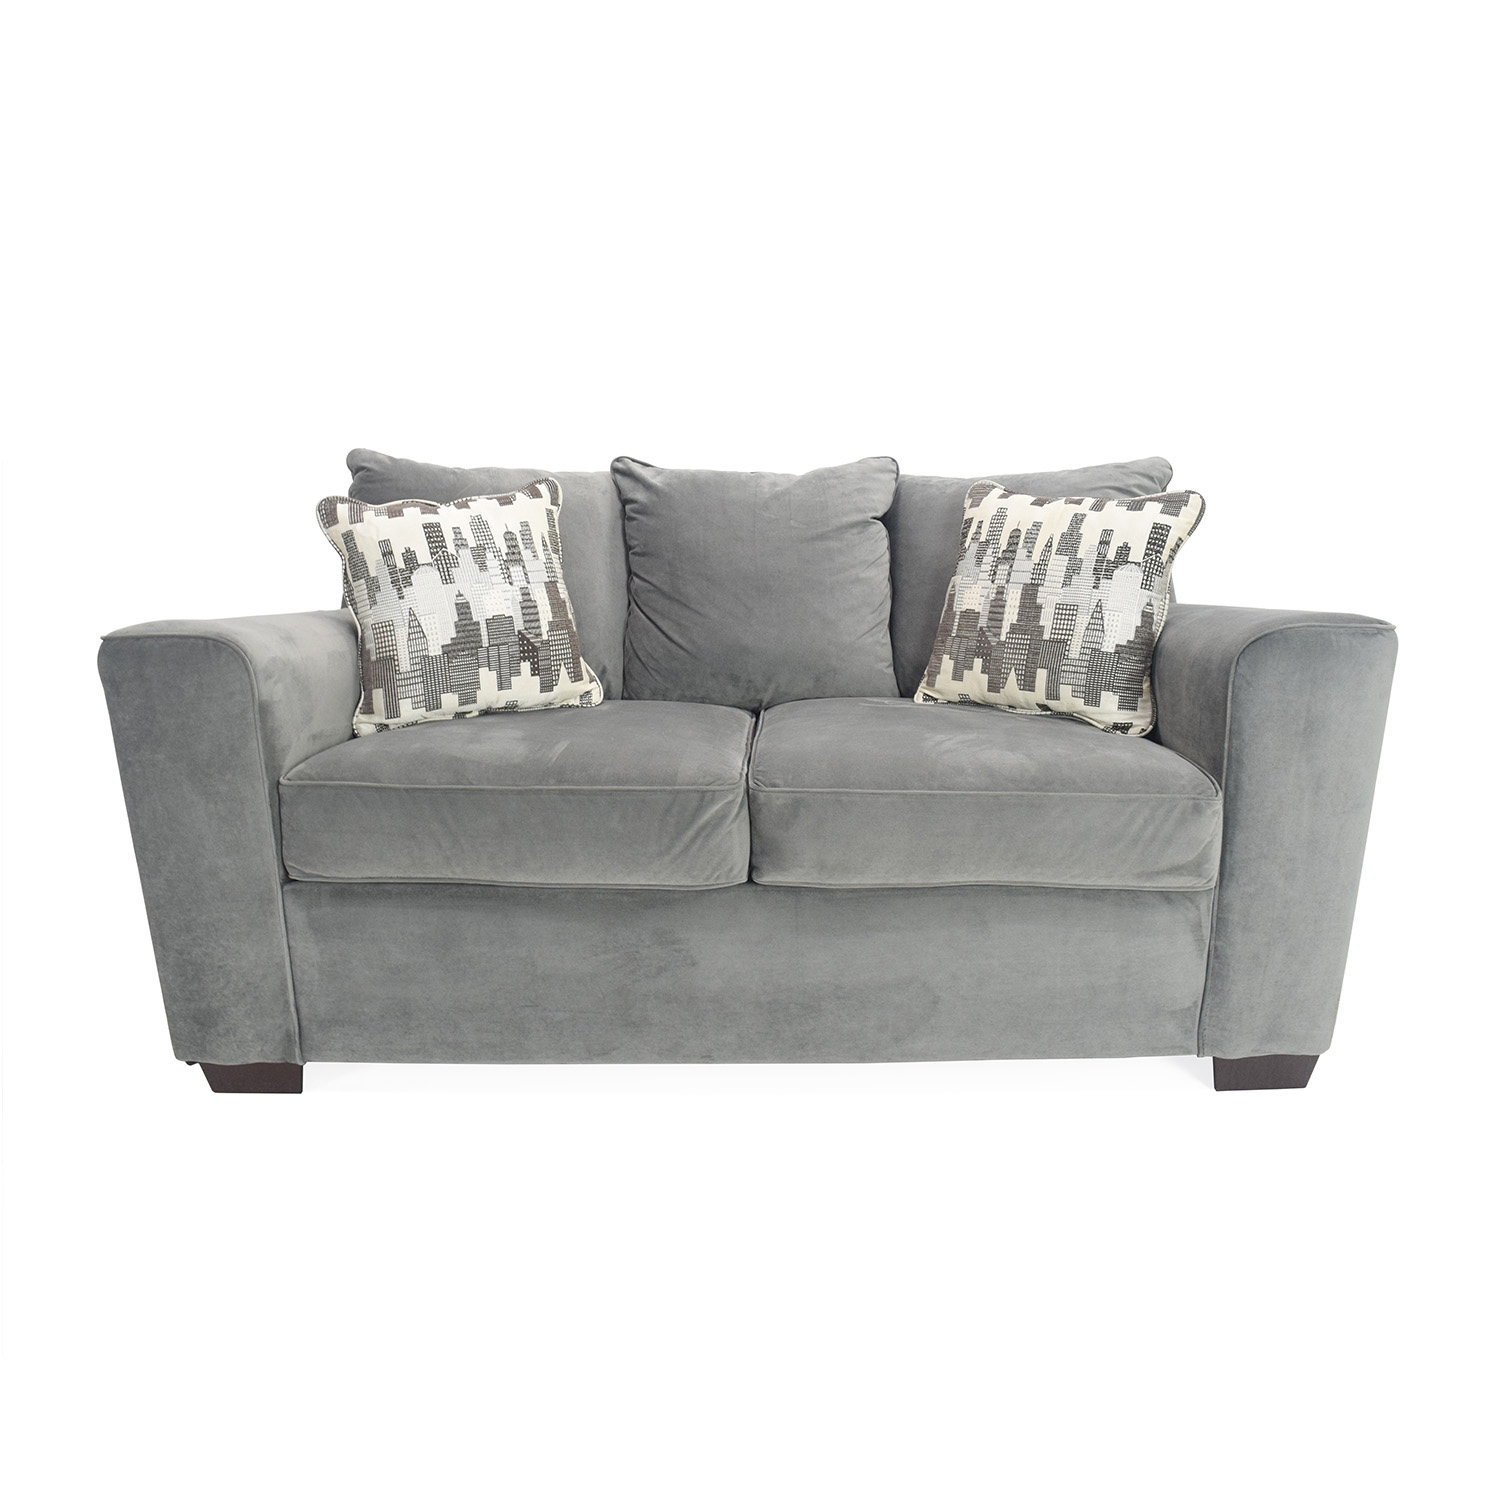 Astounding 62 Off Bobs Discount Furniture Bobs Comfy Loveseat Sofas Gamerscity Chair Design For Home Gamerscityorg